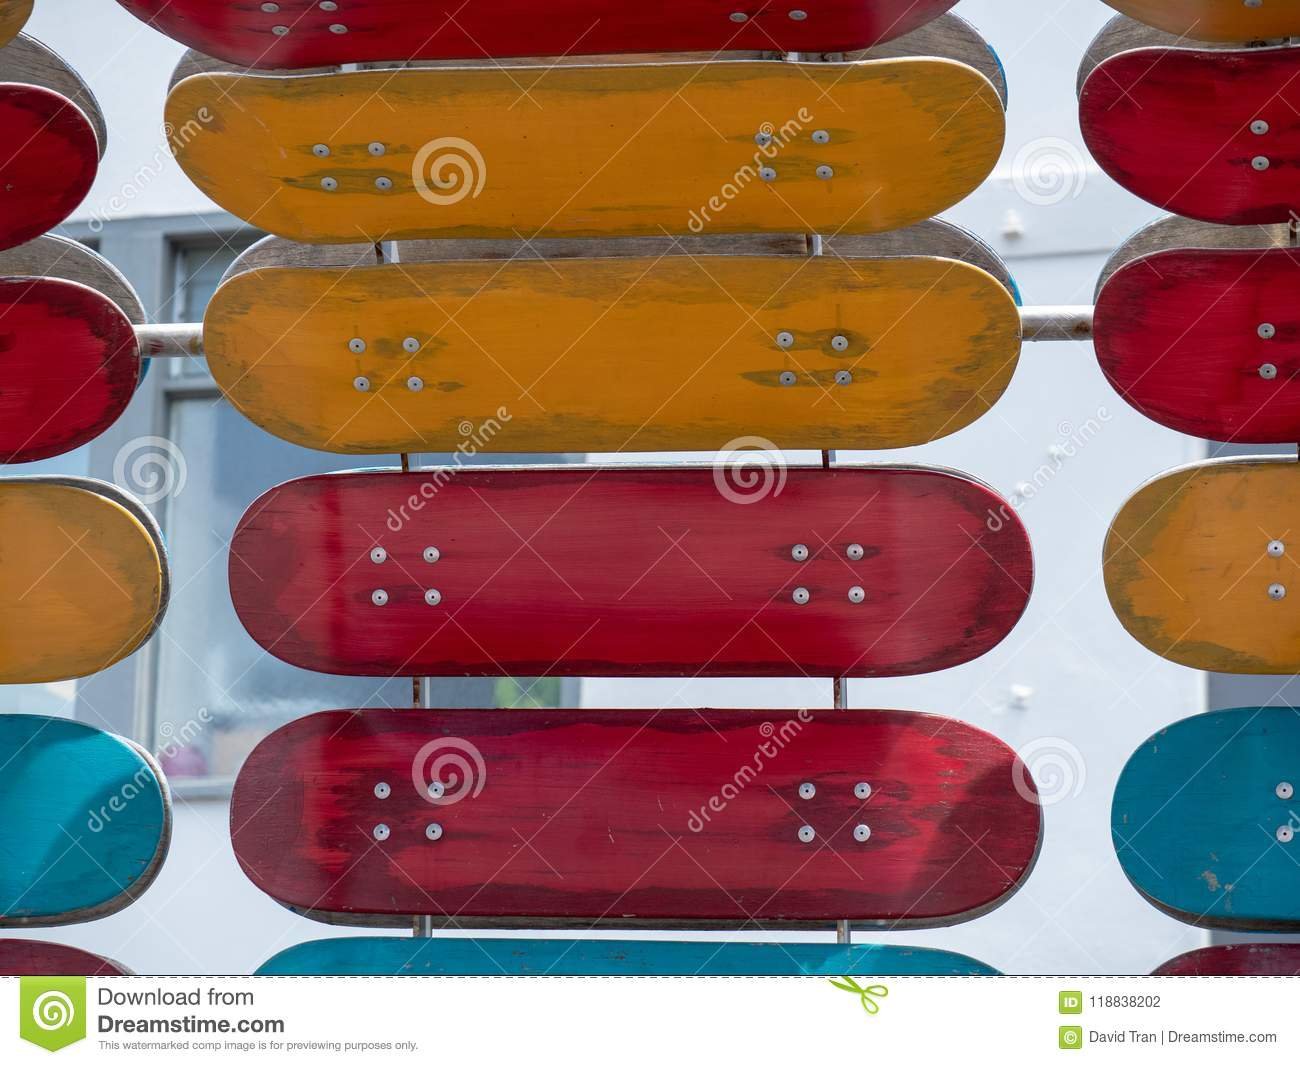 c02114ff A number of red and orange skateboard decks mounted on a structure. More  similar stock images